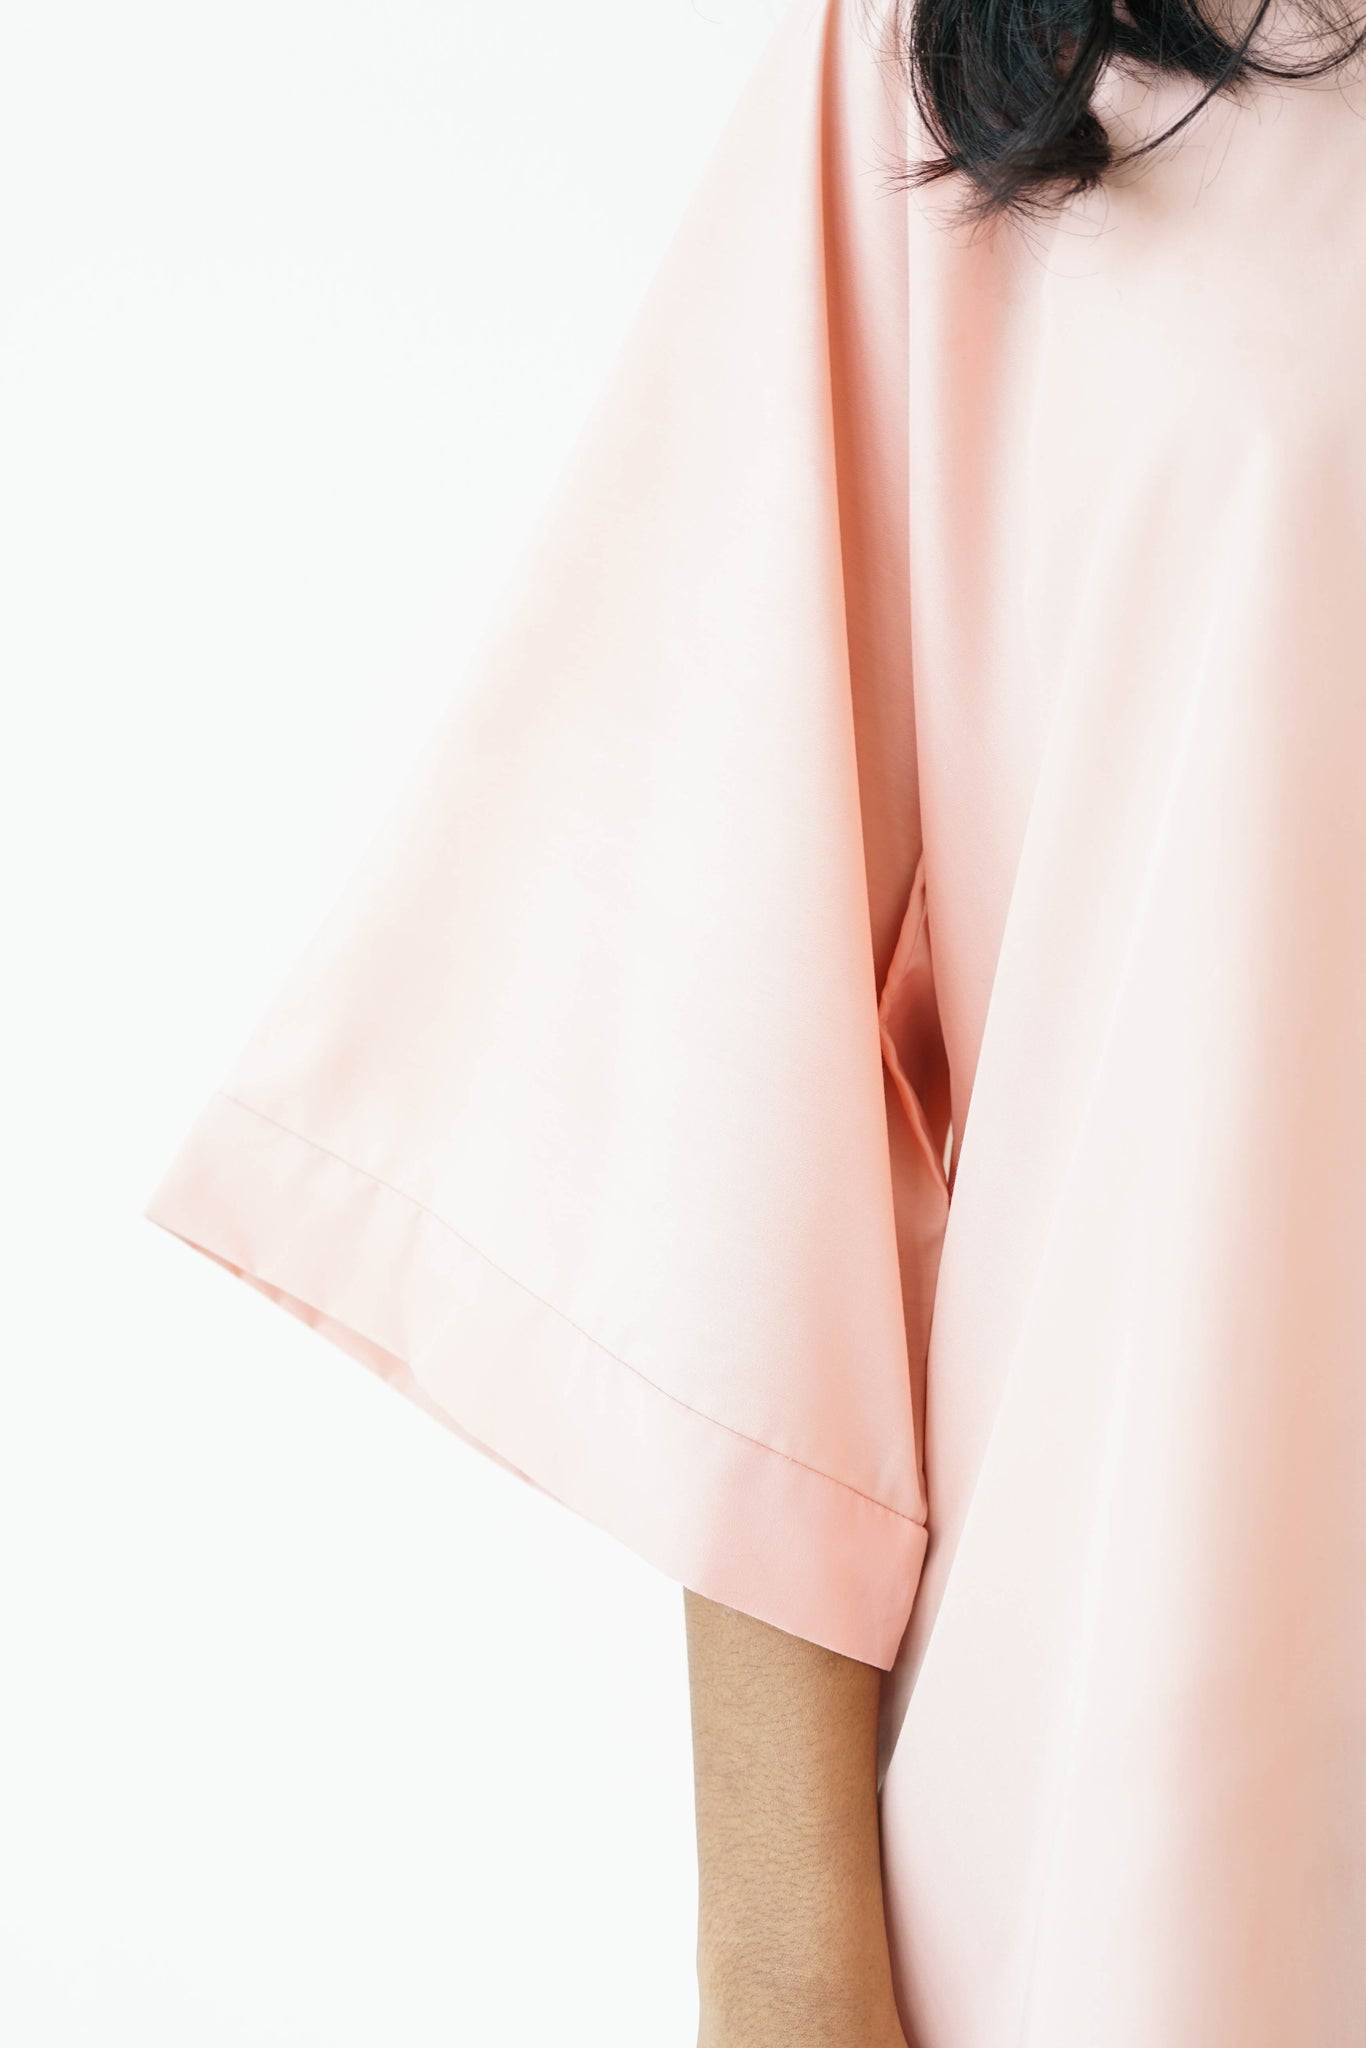 [PRE ORDER] Pastel Peach High Low Box Cotton Top